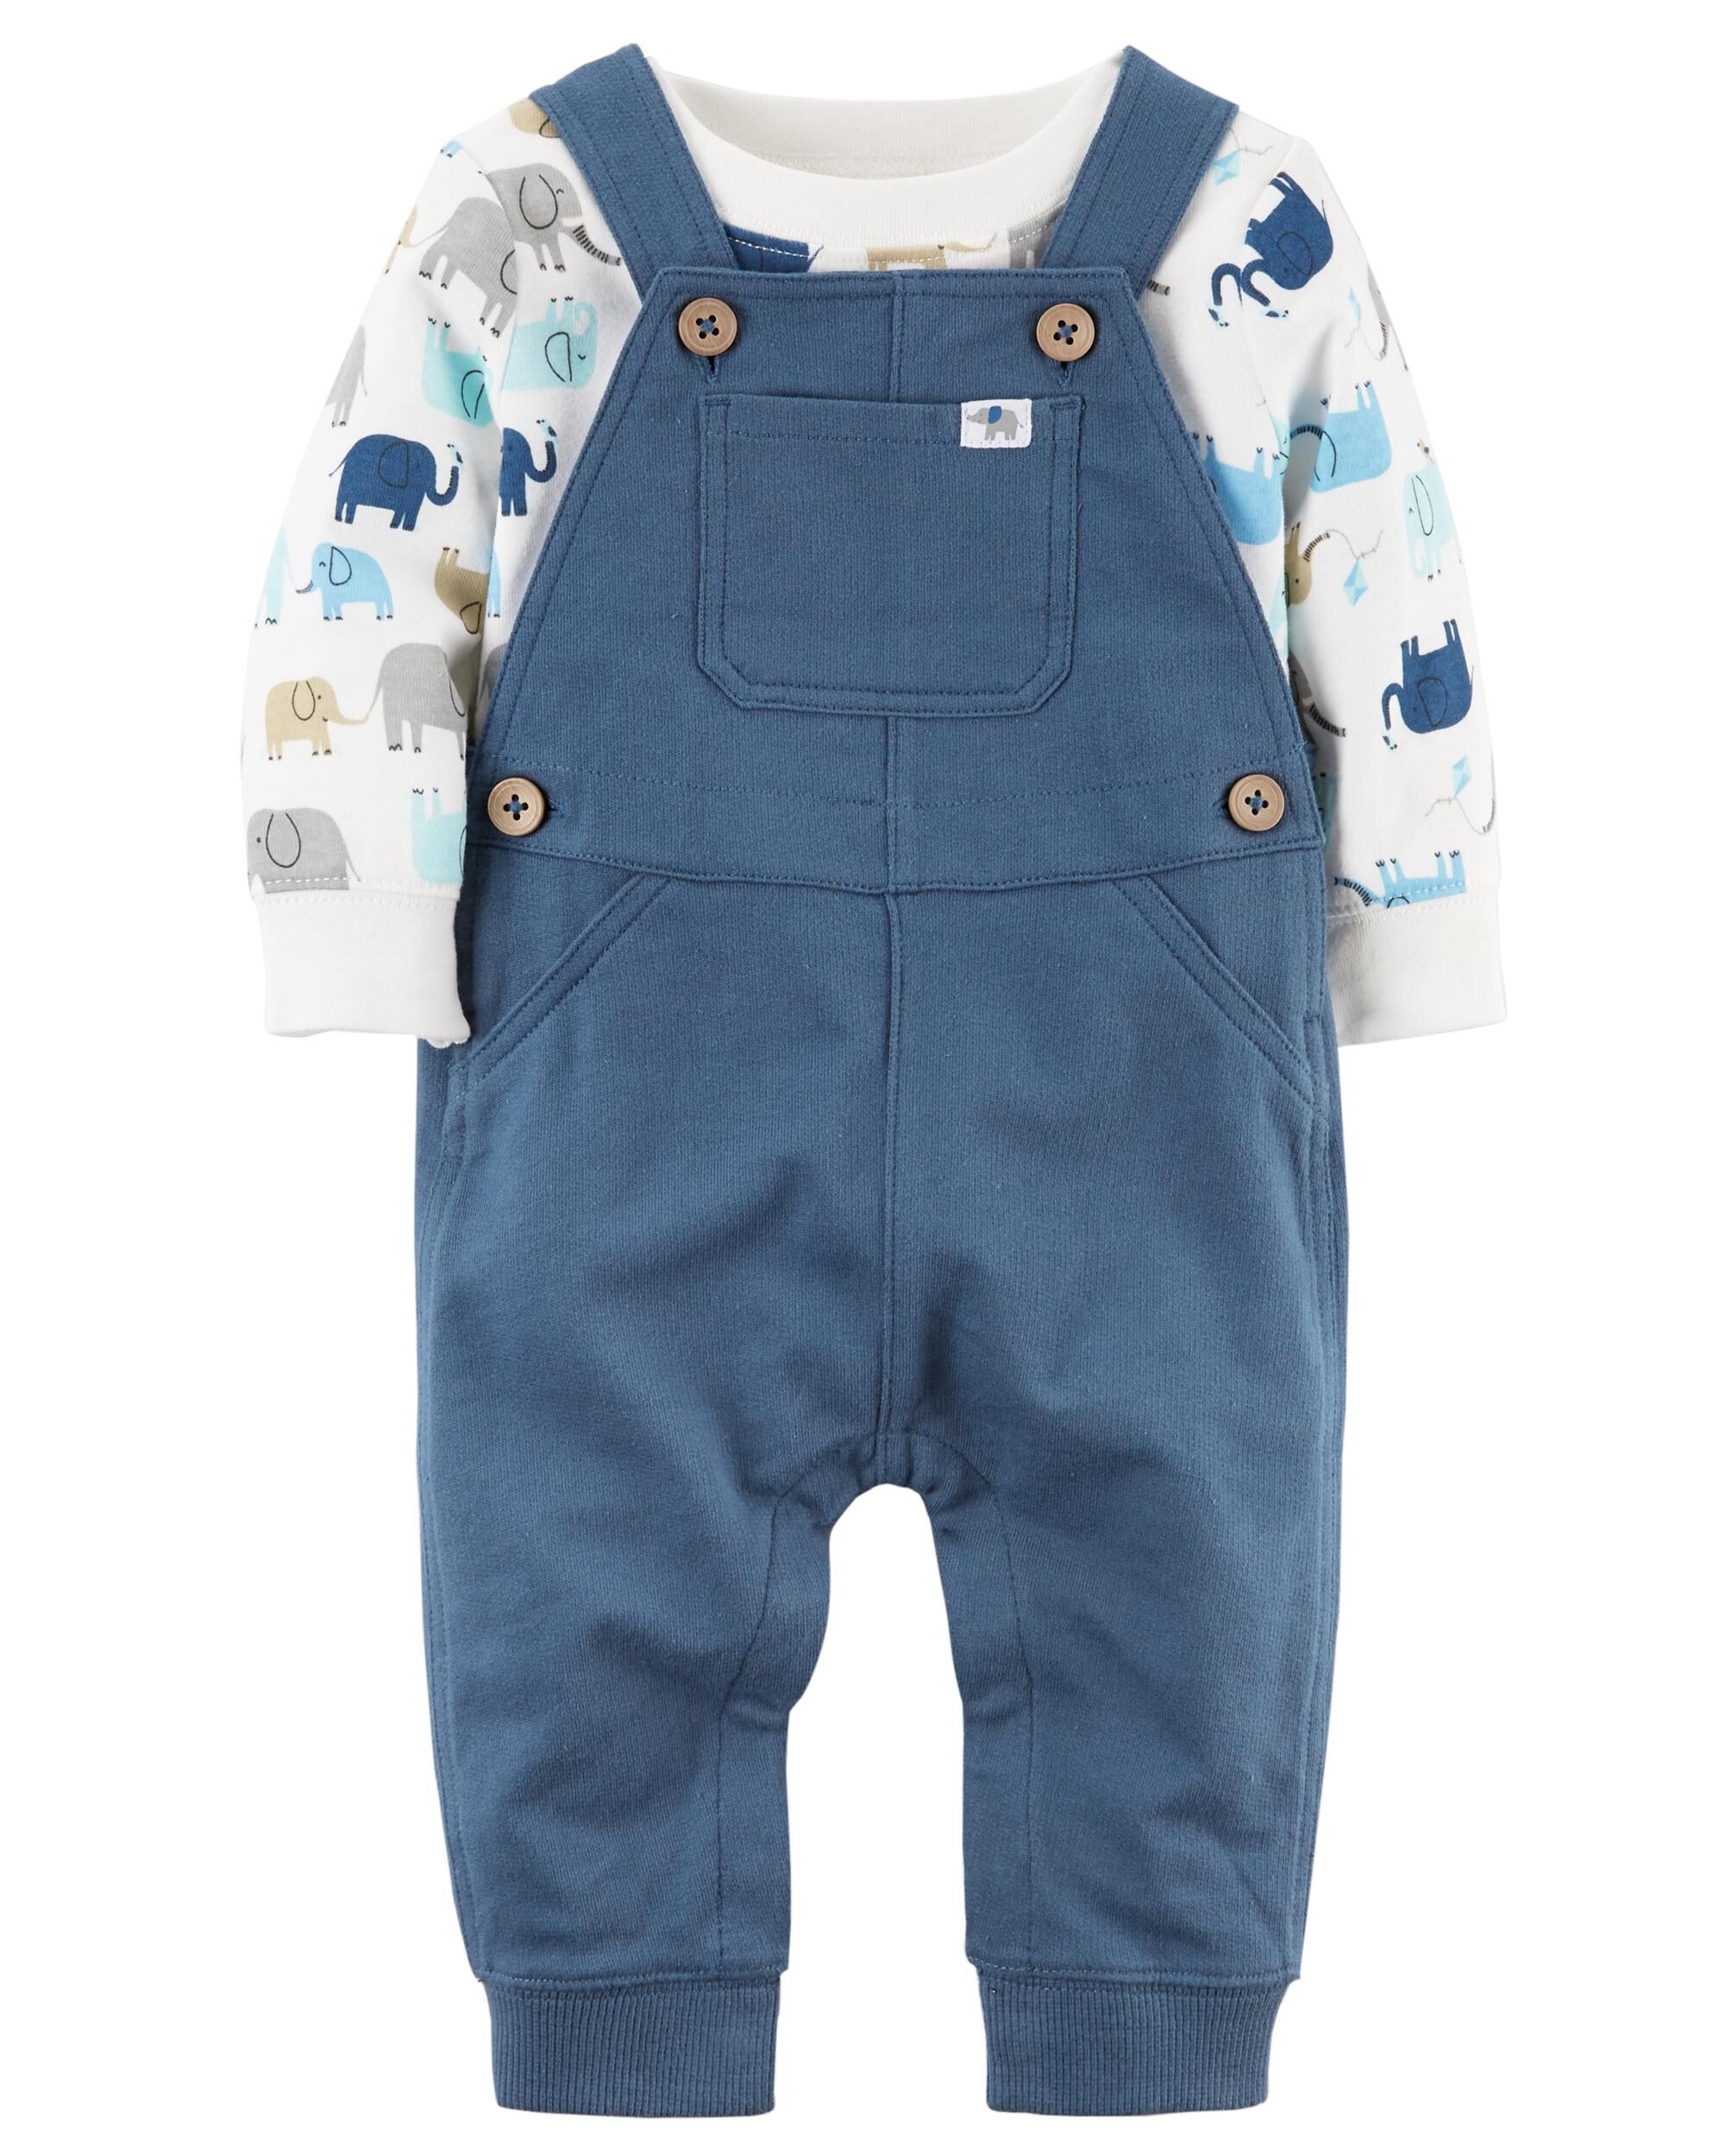 2 Piece Elephant Bodysuit & French Terry Overall Set